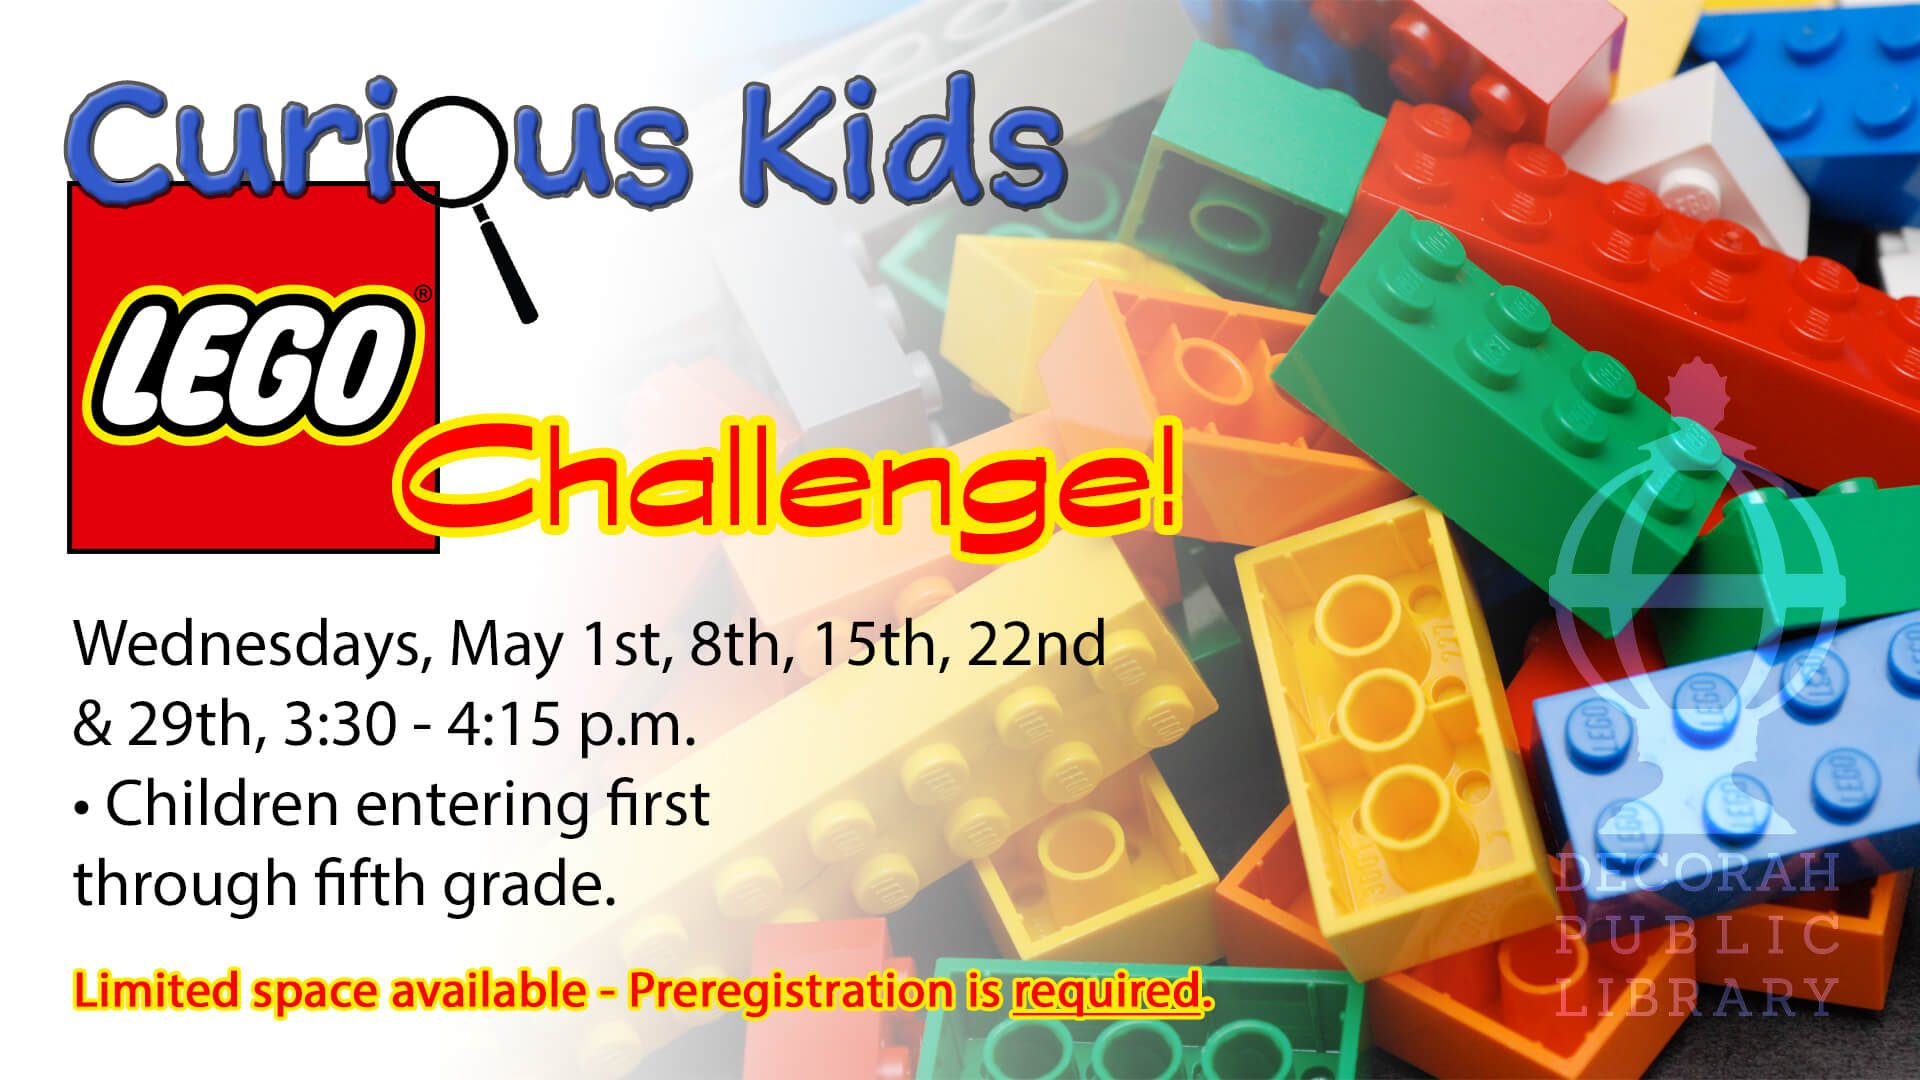 Curious Kids Lego Challenge